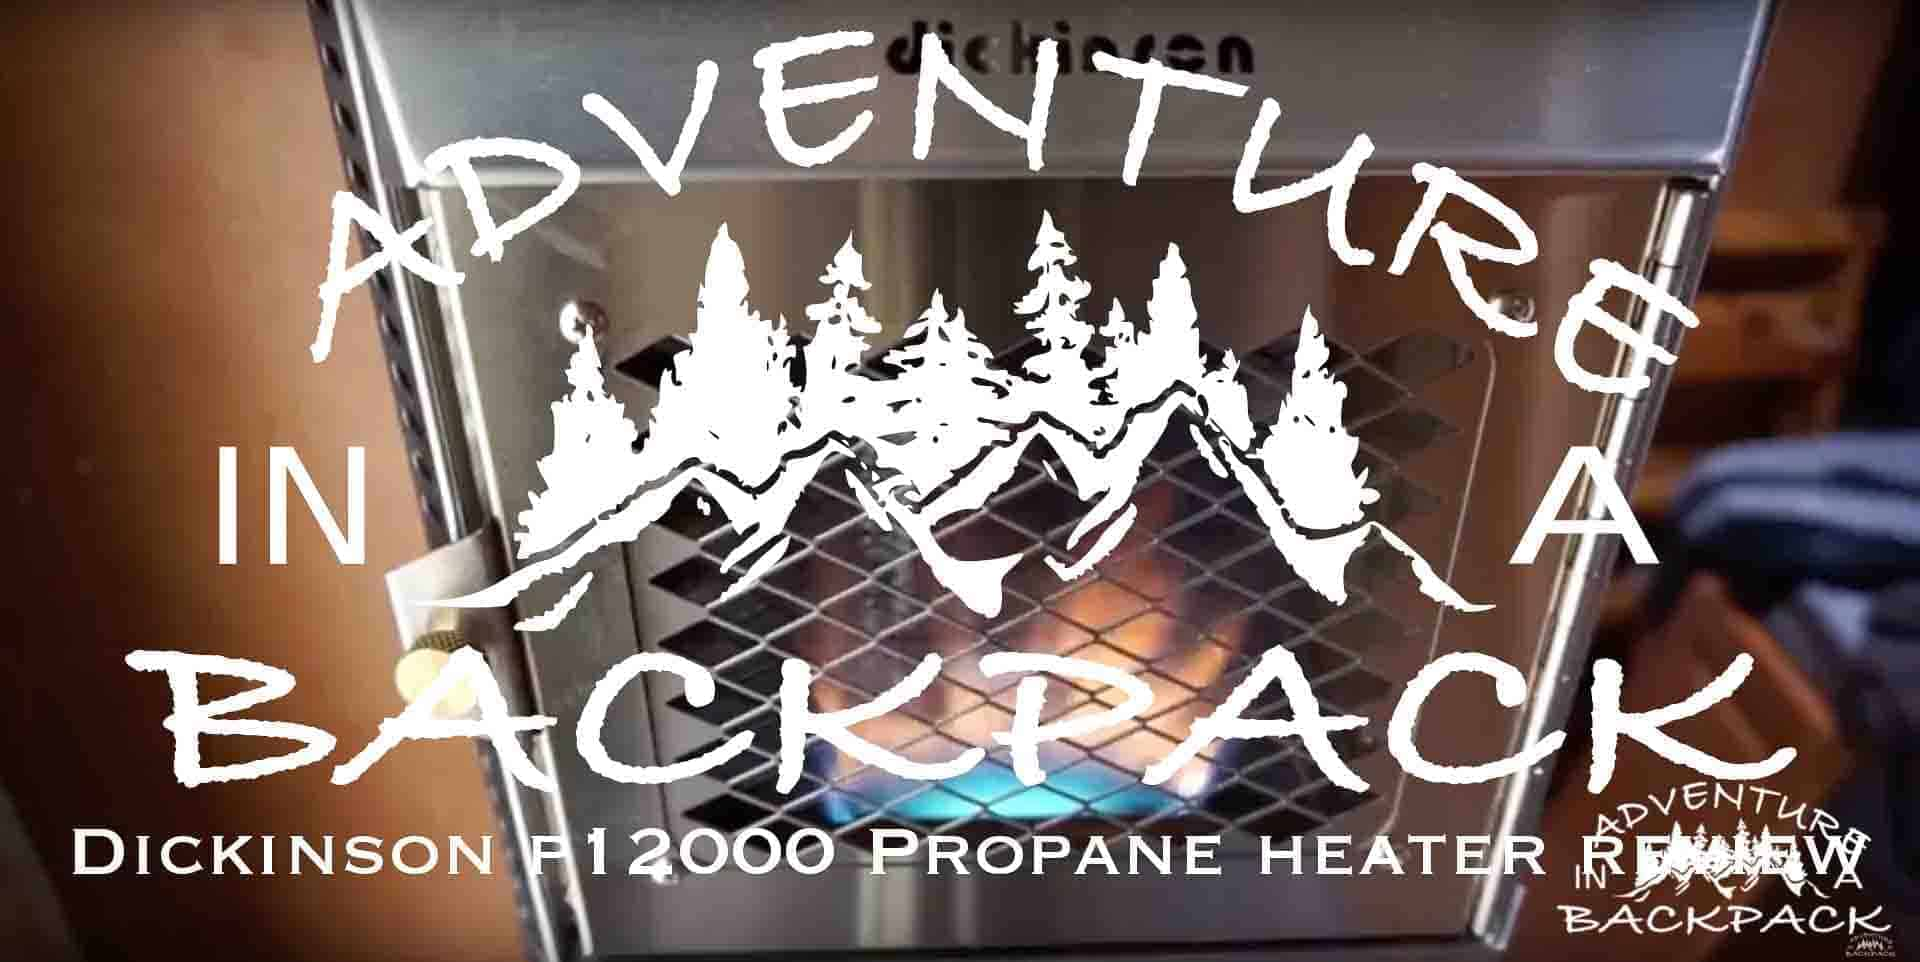 Dickinson P12000 Propane Heater